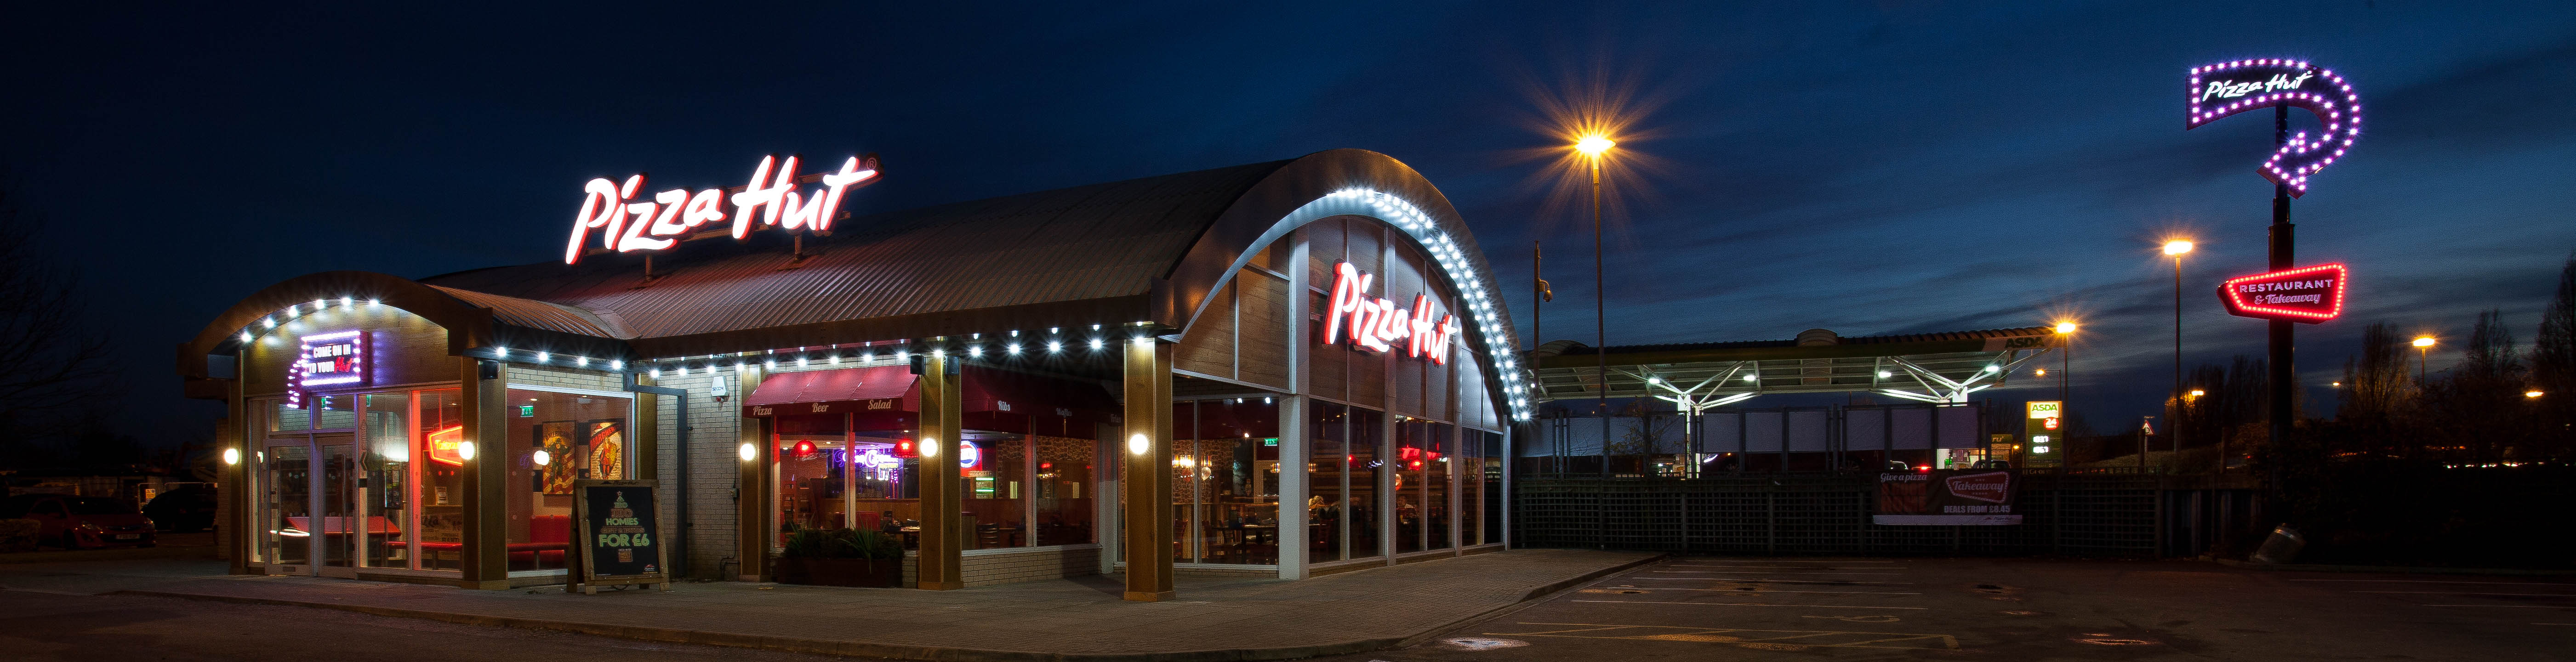 Retail Assist Gets A Slice Of The Action With Pizza Hut